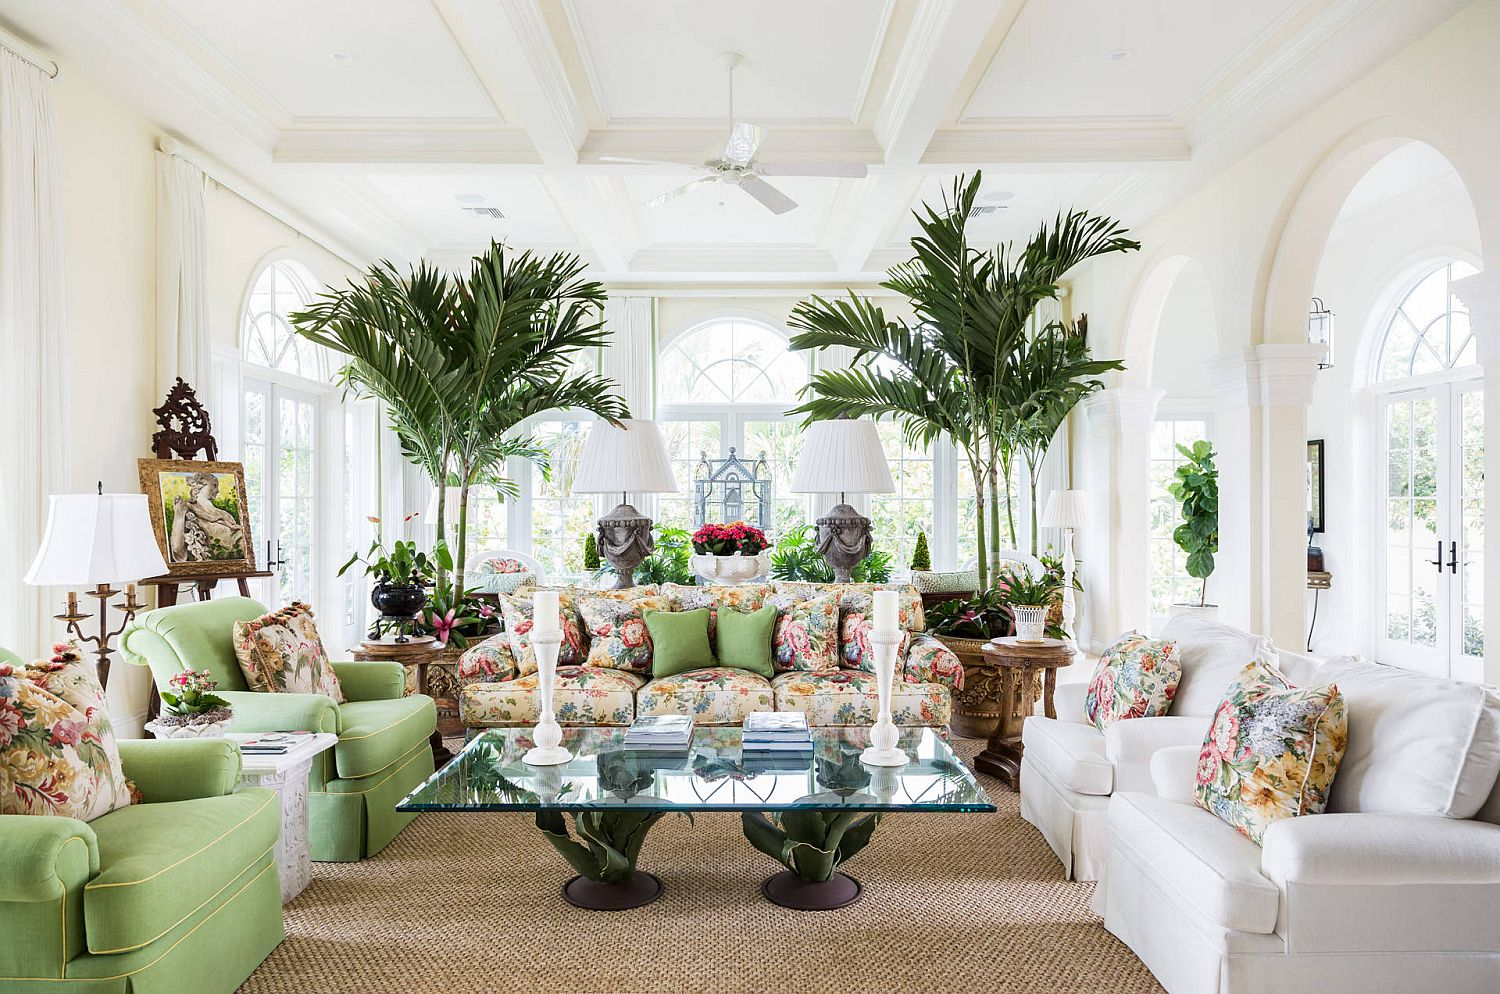 Prints and pops of color bring brightness to the white tropical style living room